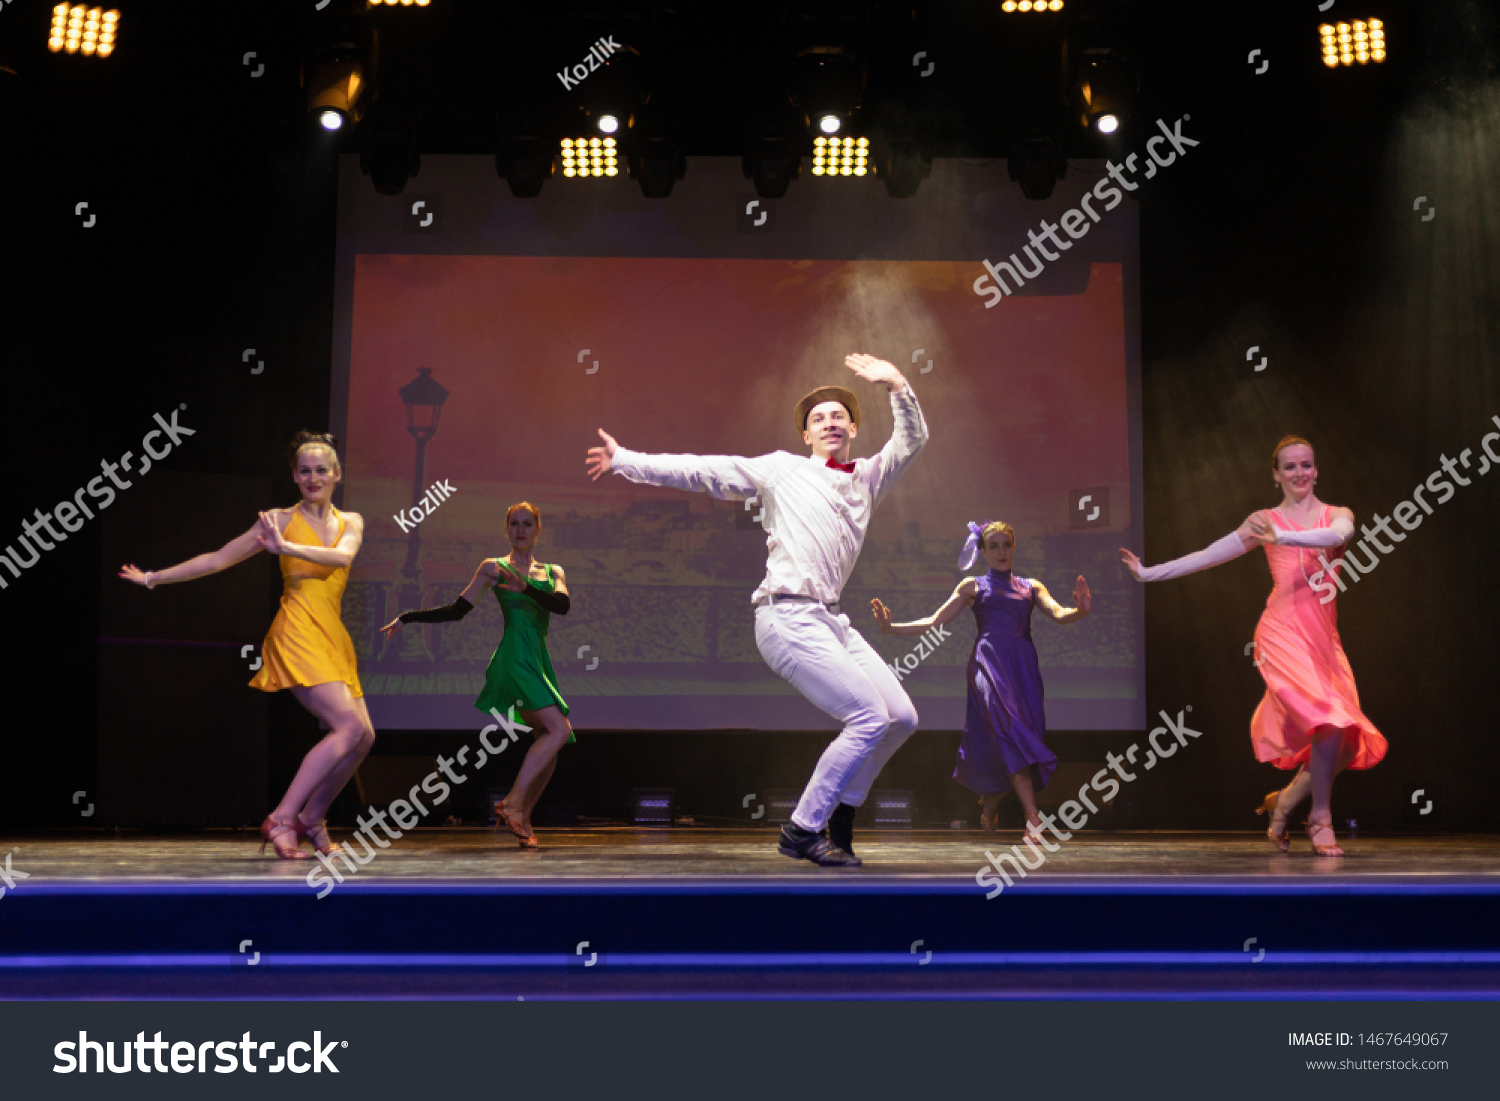 Dancer Actors perform on the theater stage in a dance show musical #1467649067